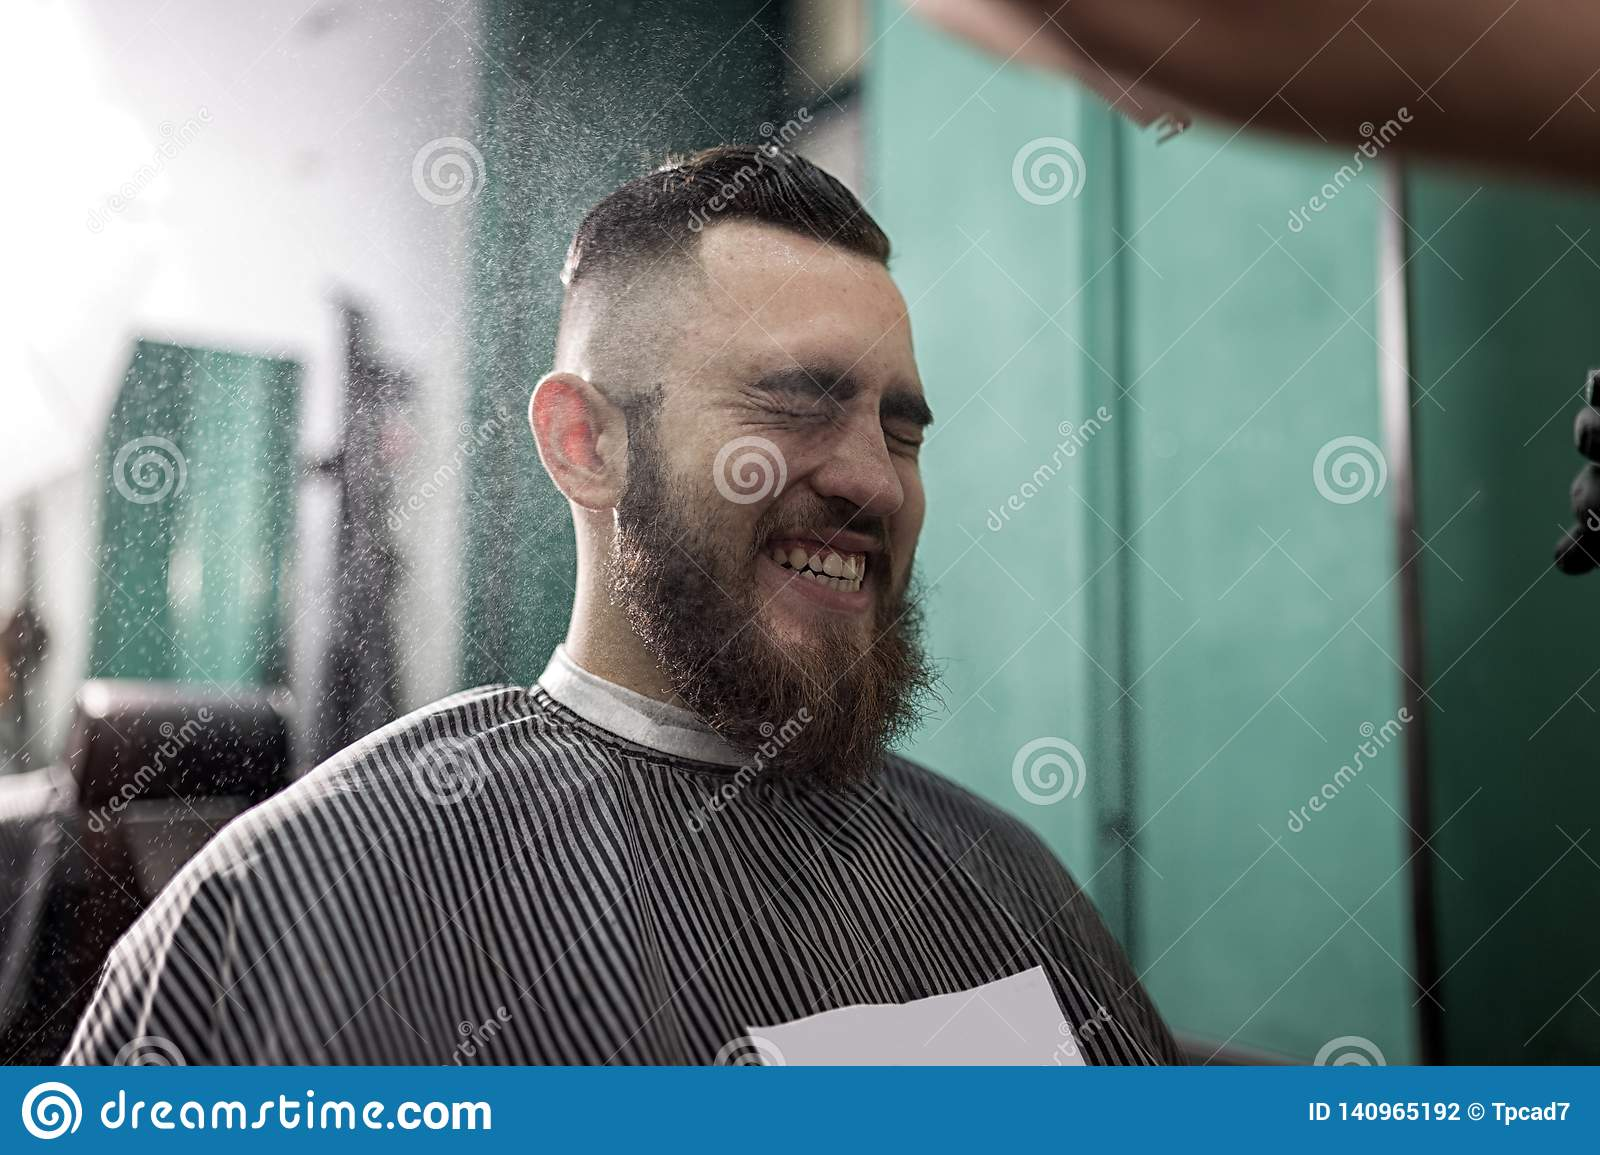 Stylish man with a beard sits and smiles at a barber shop. Barber in black gloves does the spraying for hairstyle